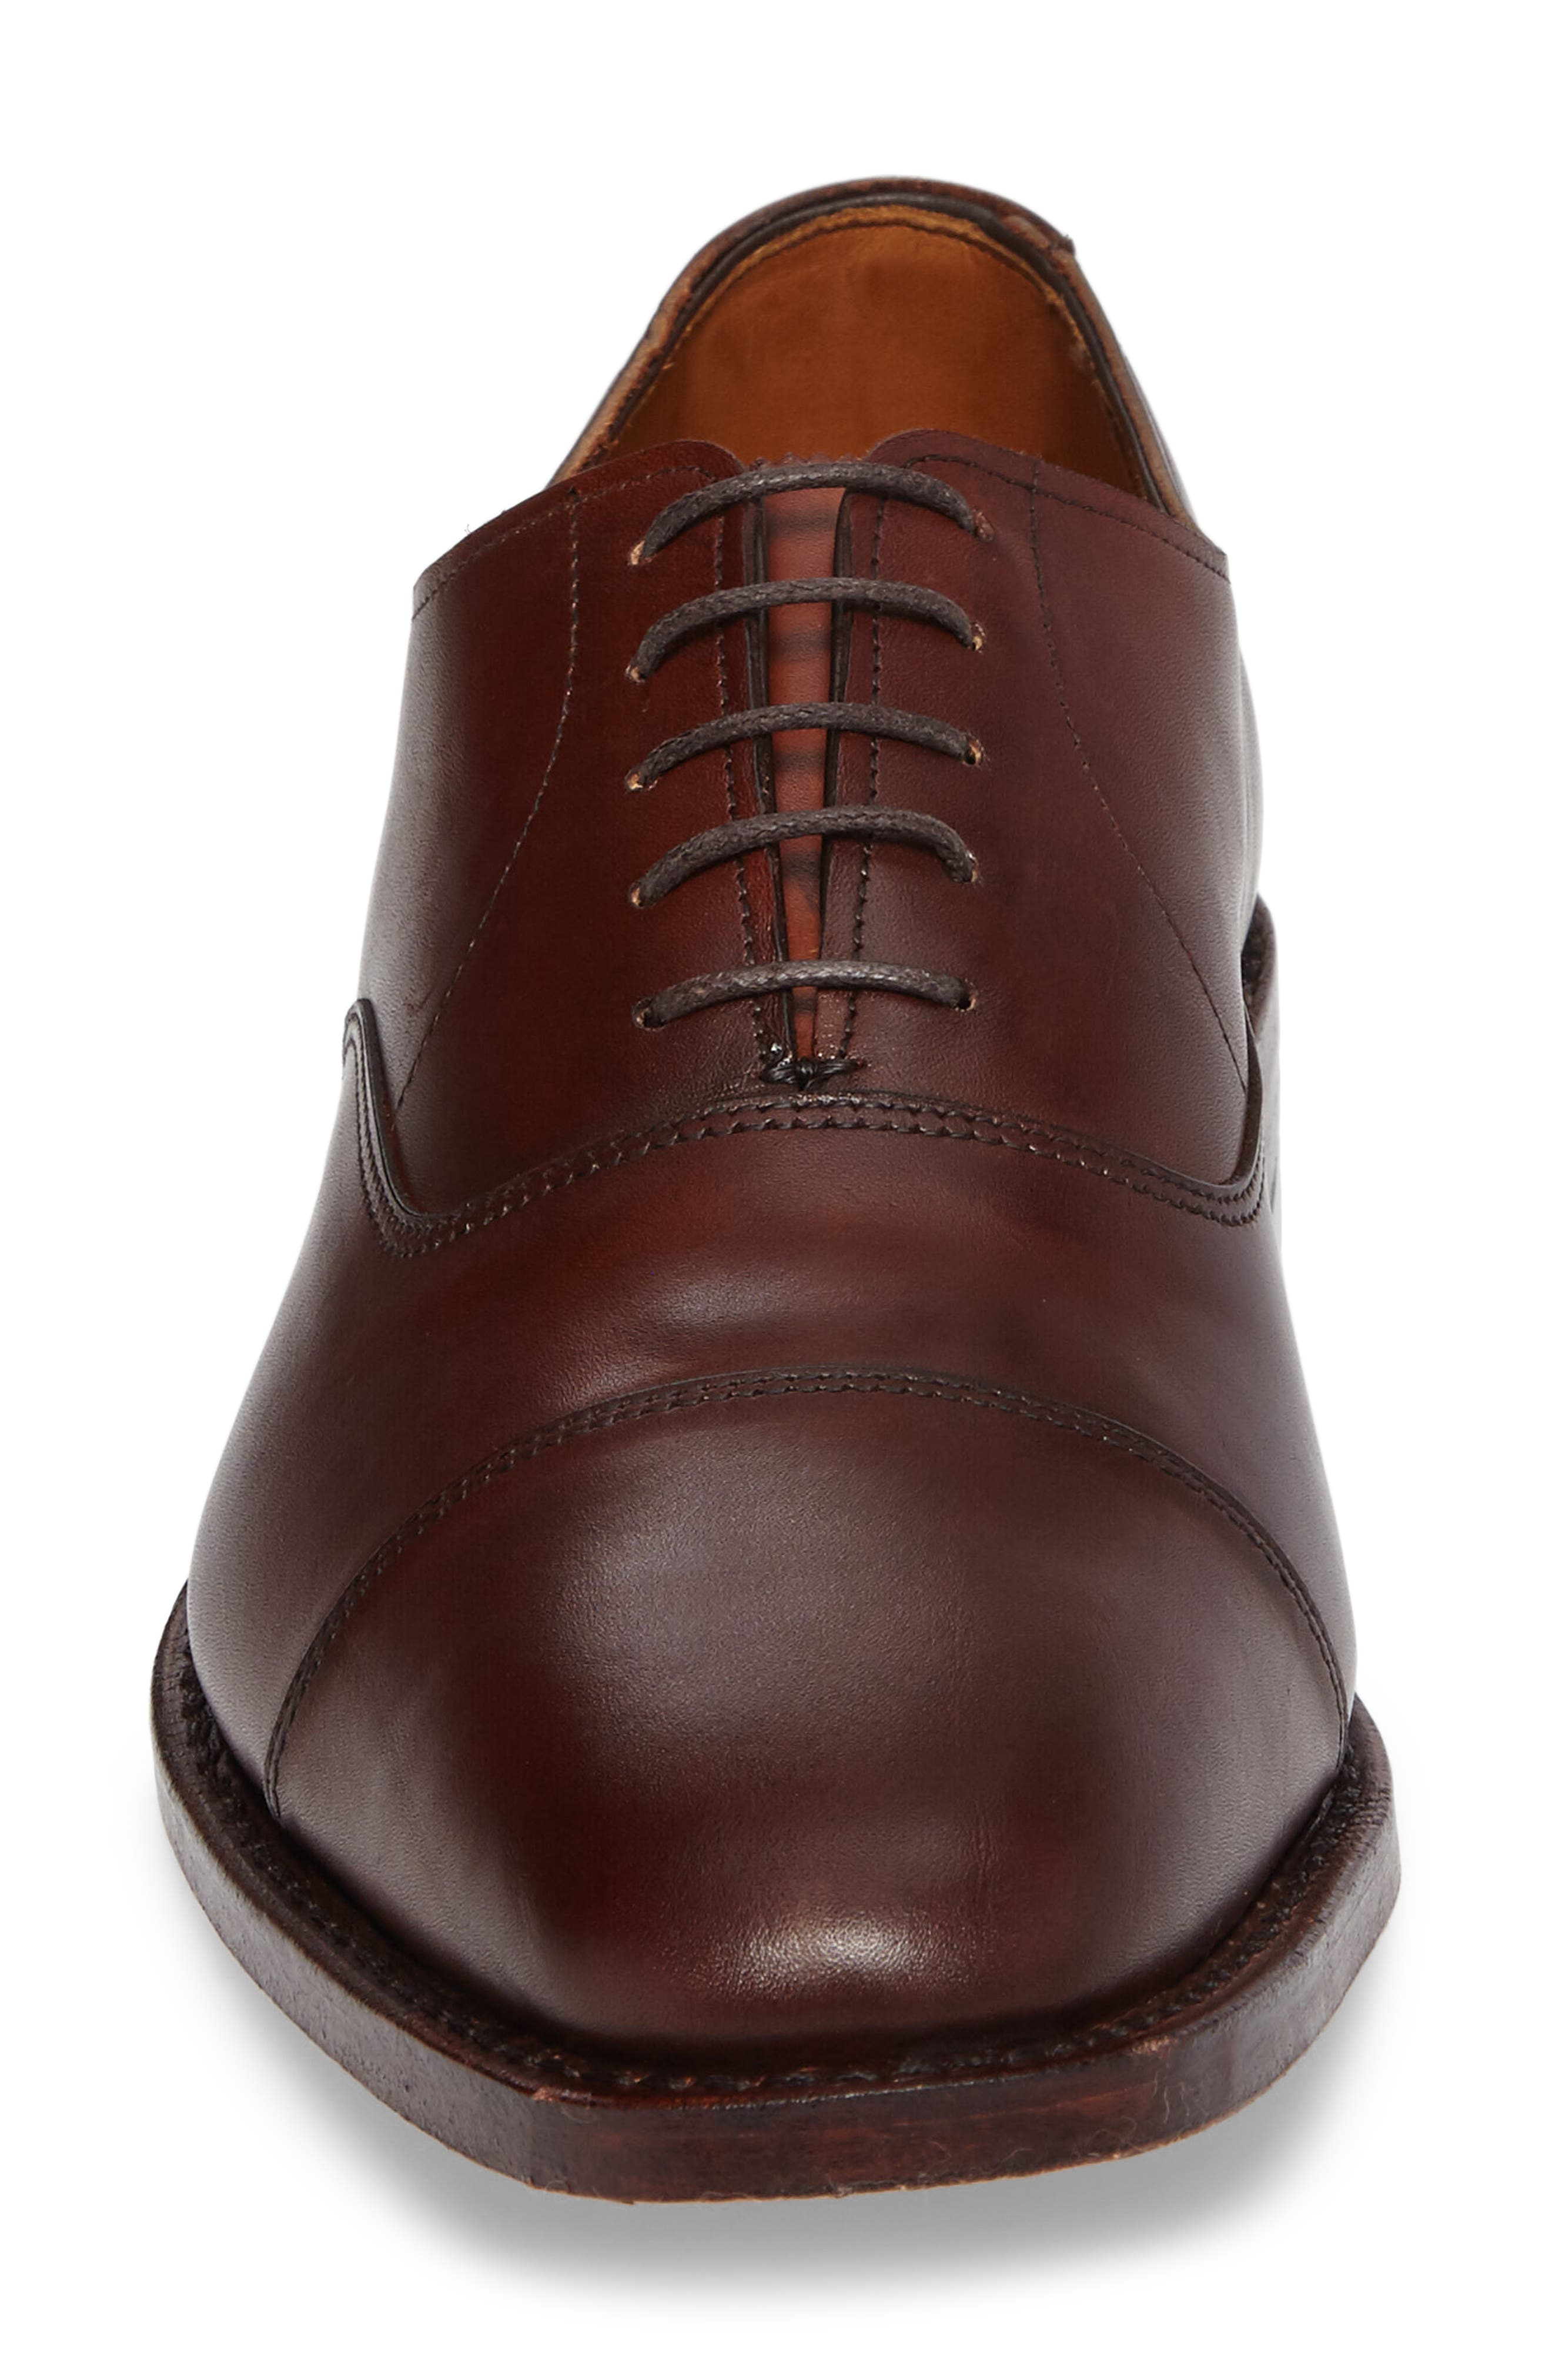 'Exchange Place' Cap Toe Oxford,                             Alternate thumbnail 4, color,                             Dark Chili Leather